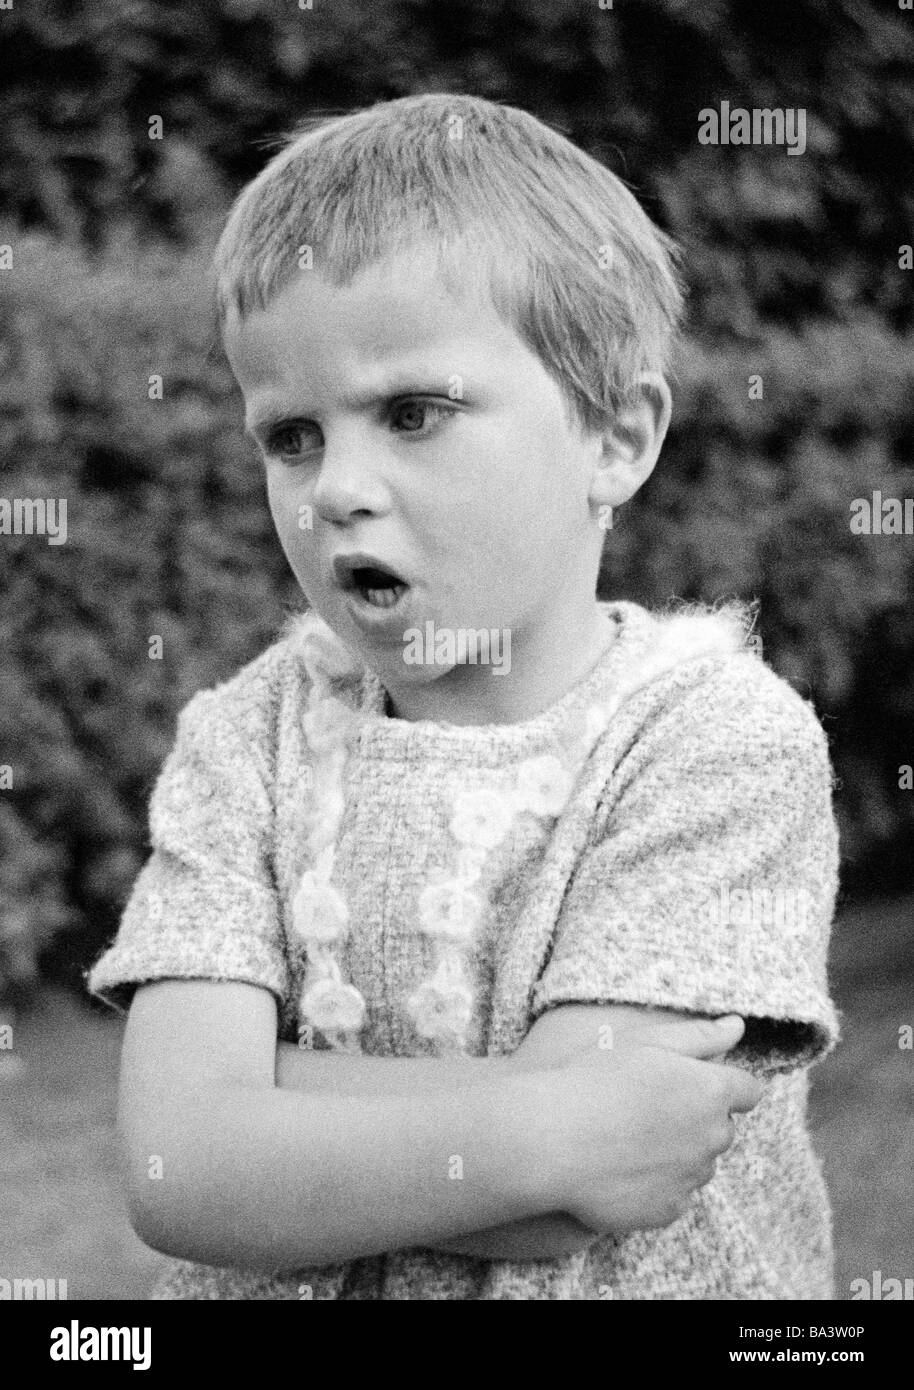 Sixties, black and white photo, people, children, little girl is annoyed and rails, aged 4 to 6 years, Birgit Stock Photo